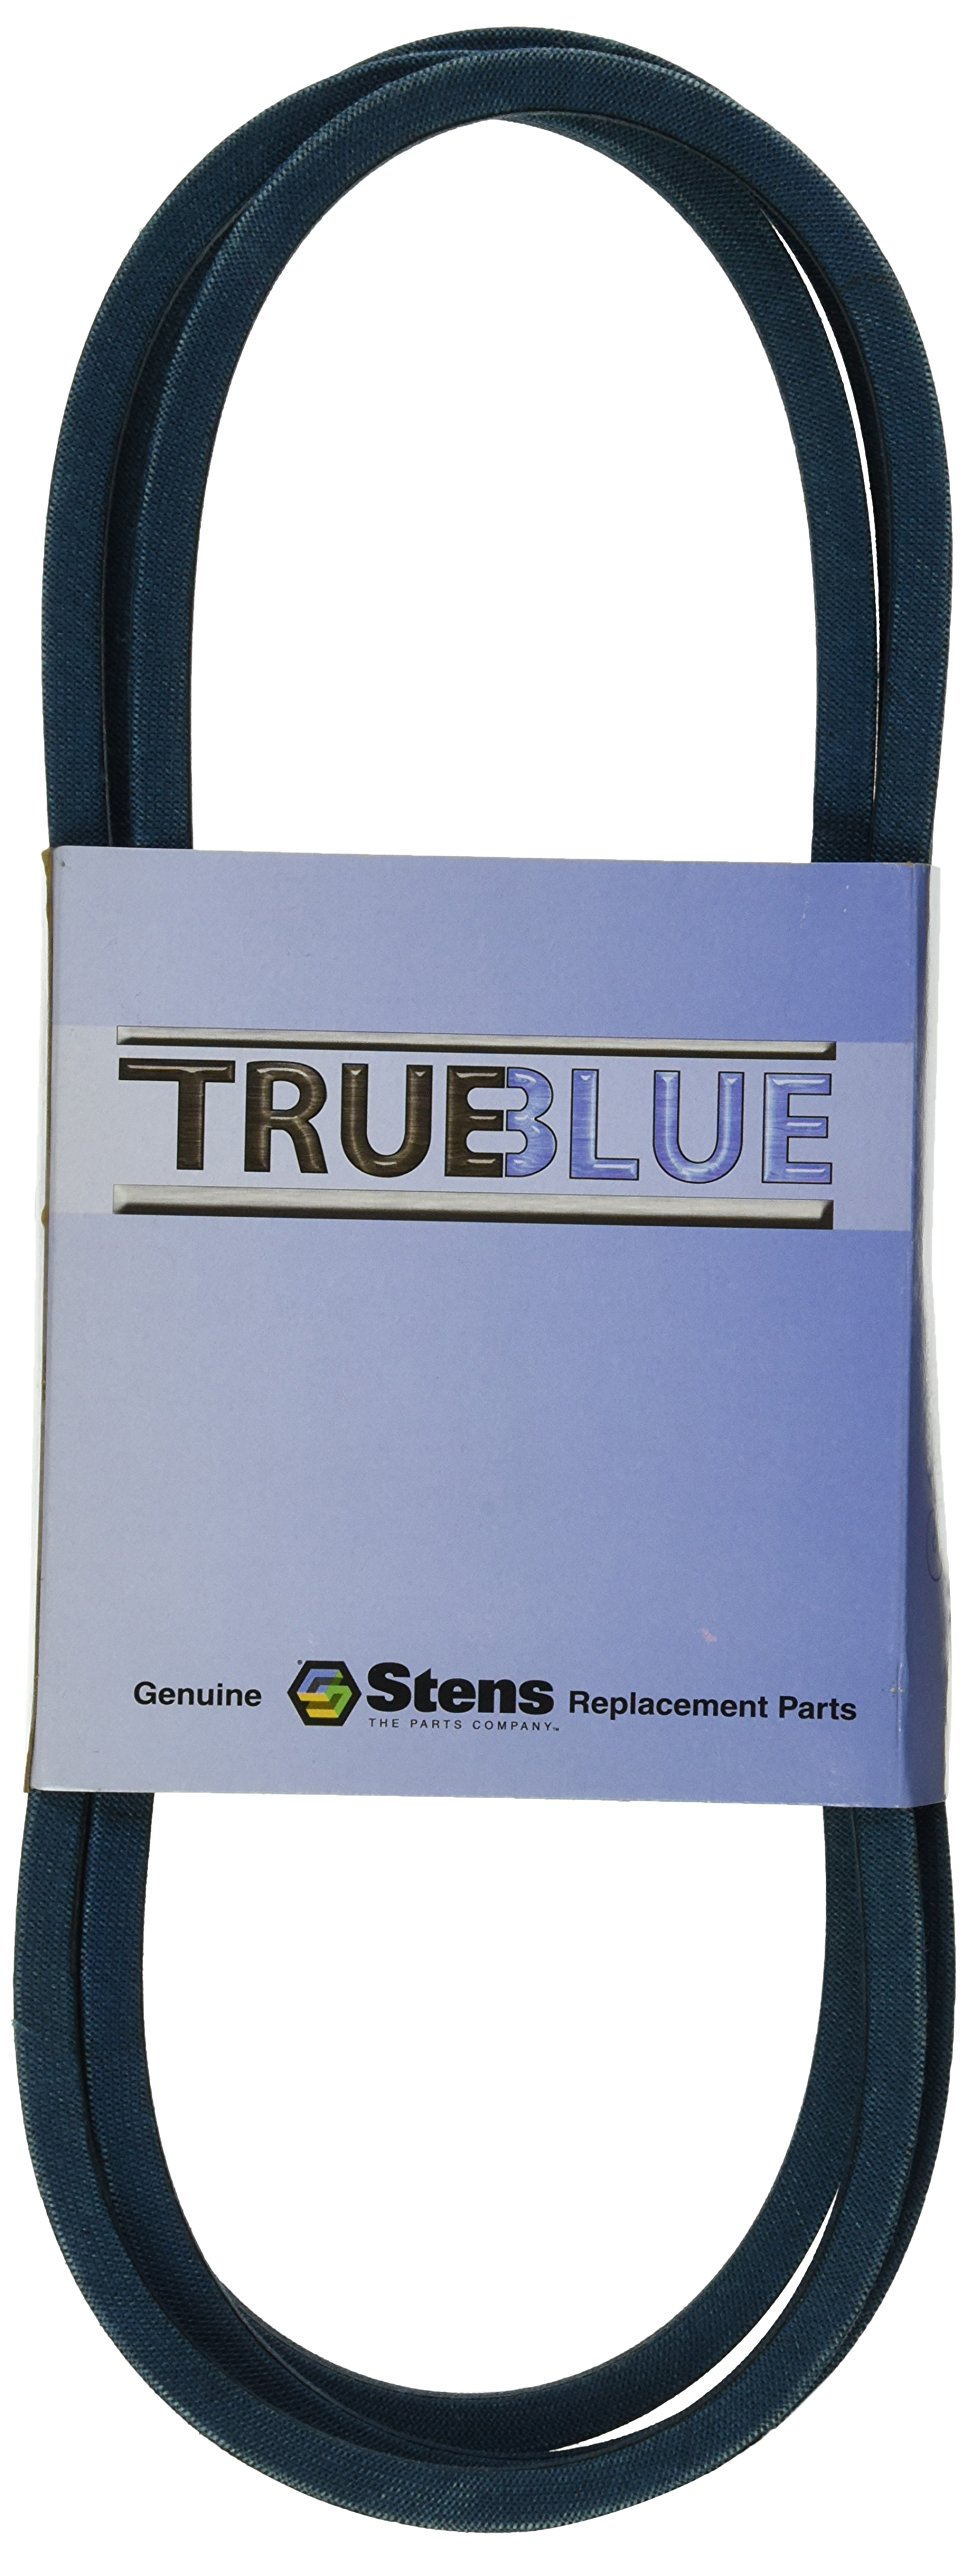 Stens 248-102 True-Blue Belt Replaces Toro 28-2650 109956 113072 8699 94-2501 Simplicity 1664644SM Dr Power Equipment 15173 Simplicity AP100SM Western Auto 216594, 102-Inch by-1/2-inch